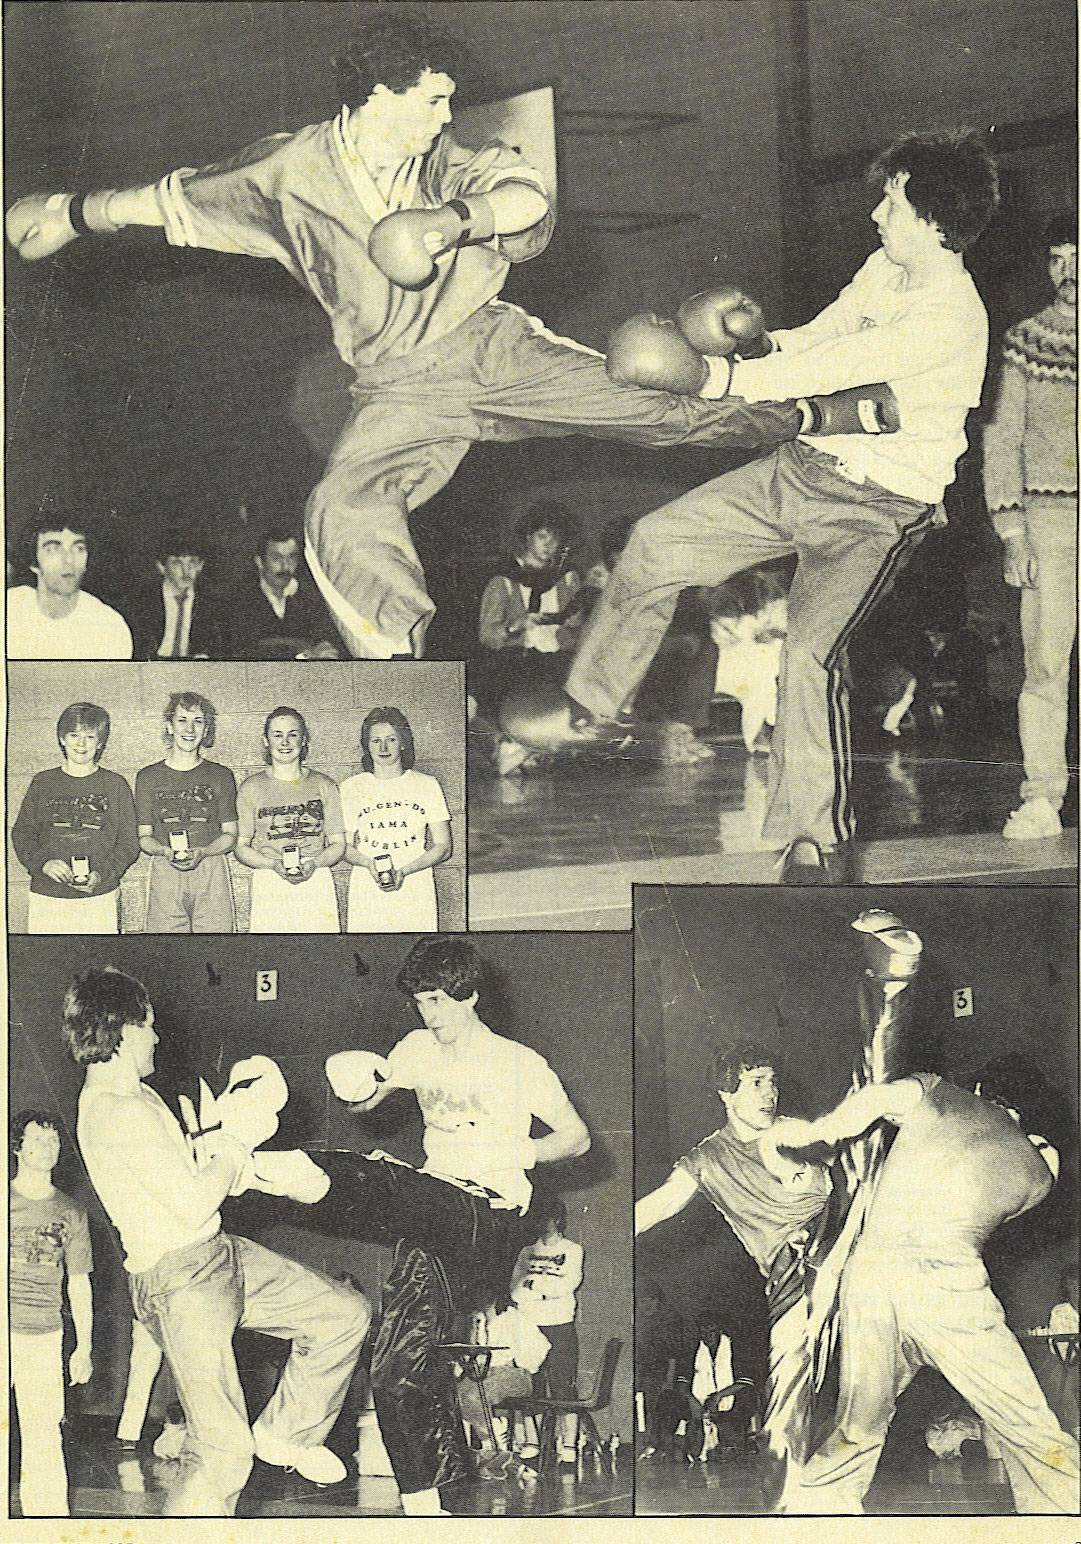 Spin Kick by George Canning Jnr